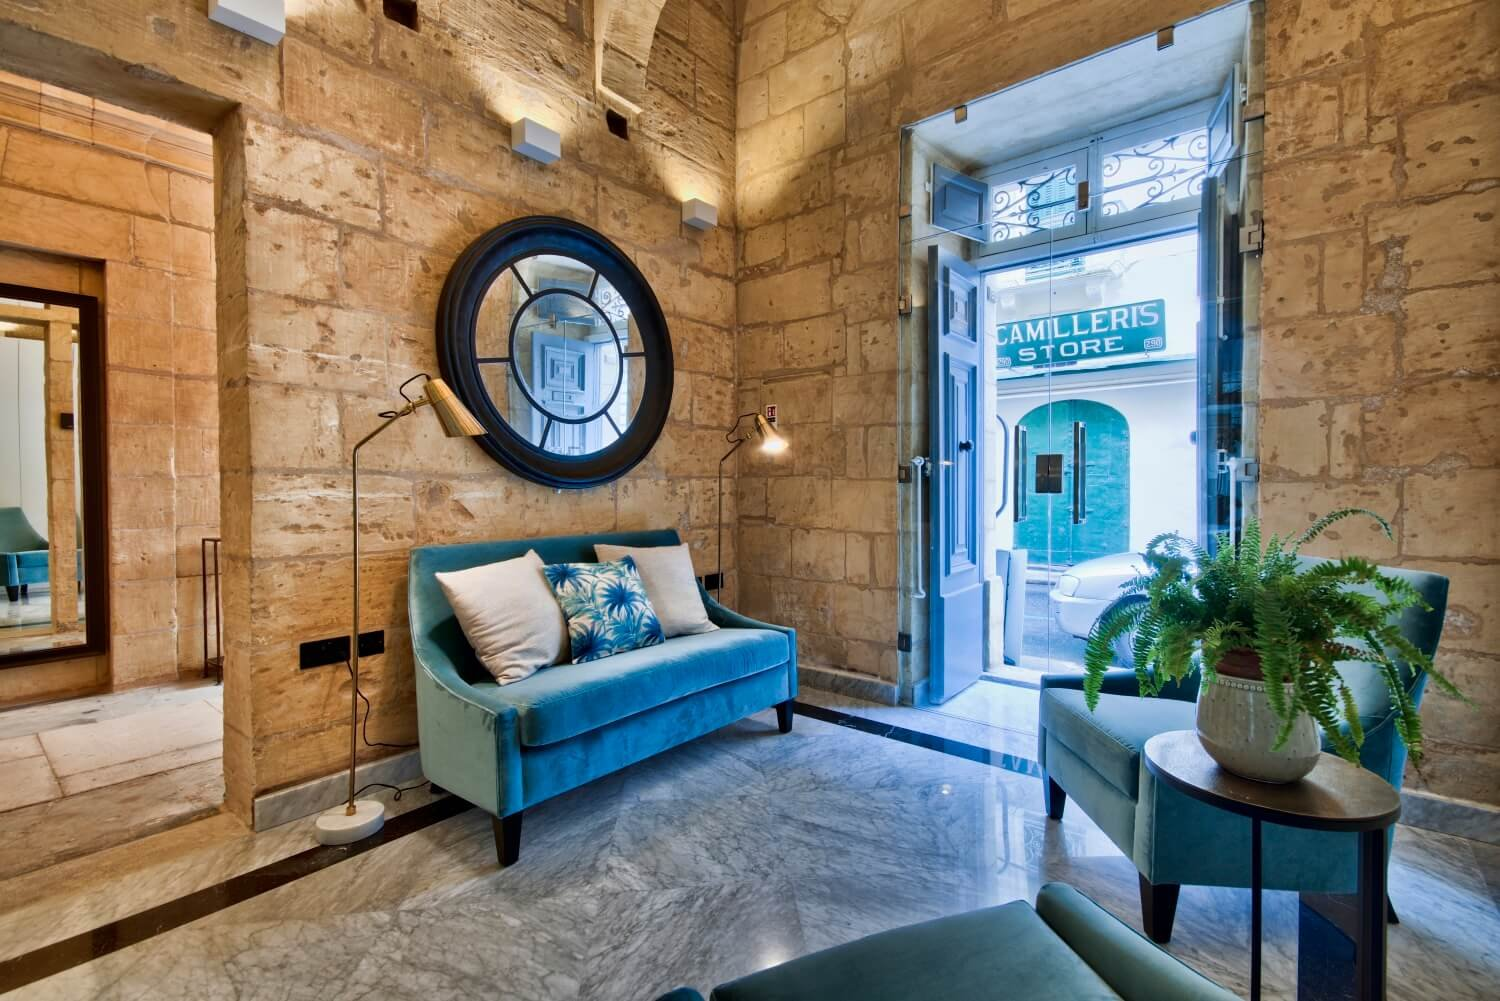 66 St. Paul's Hotel & Spa - Valletta